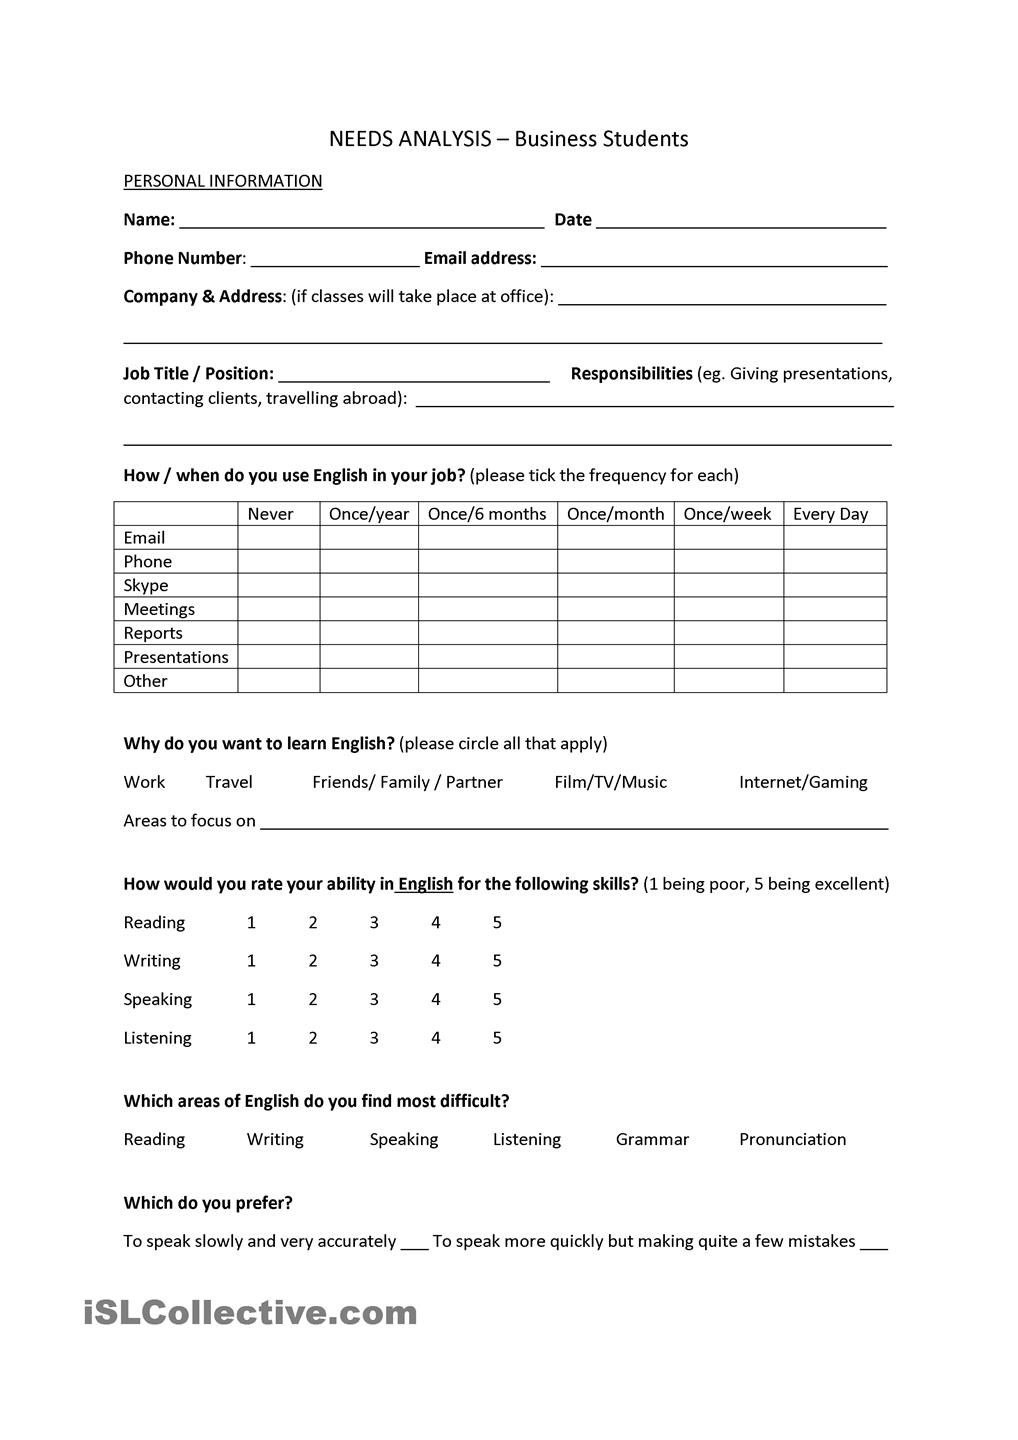 Needs Analysis Template  Business Students  Esl Worksheets Of The Inside Training Needs Analysis Report Template